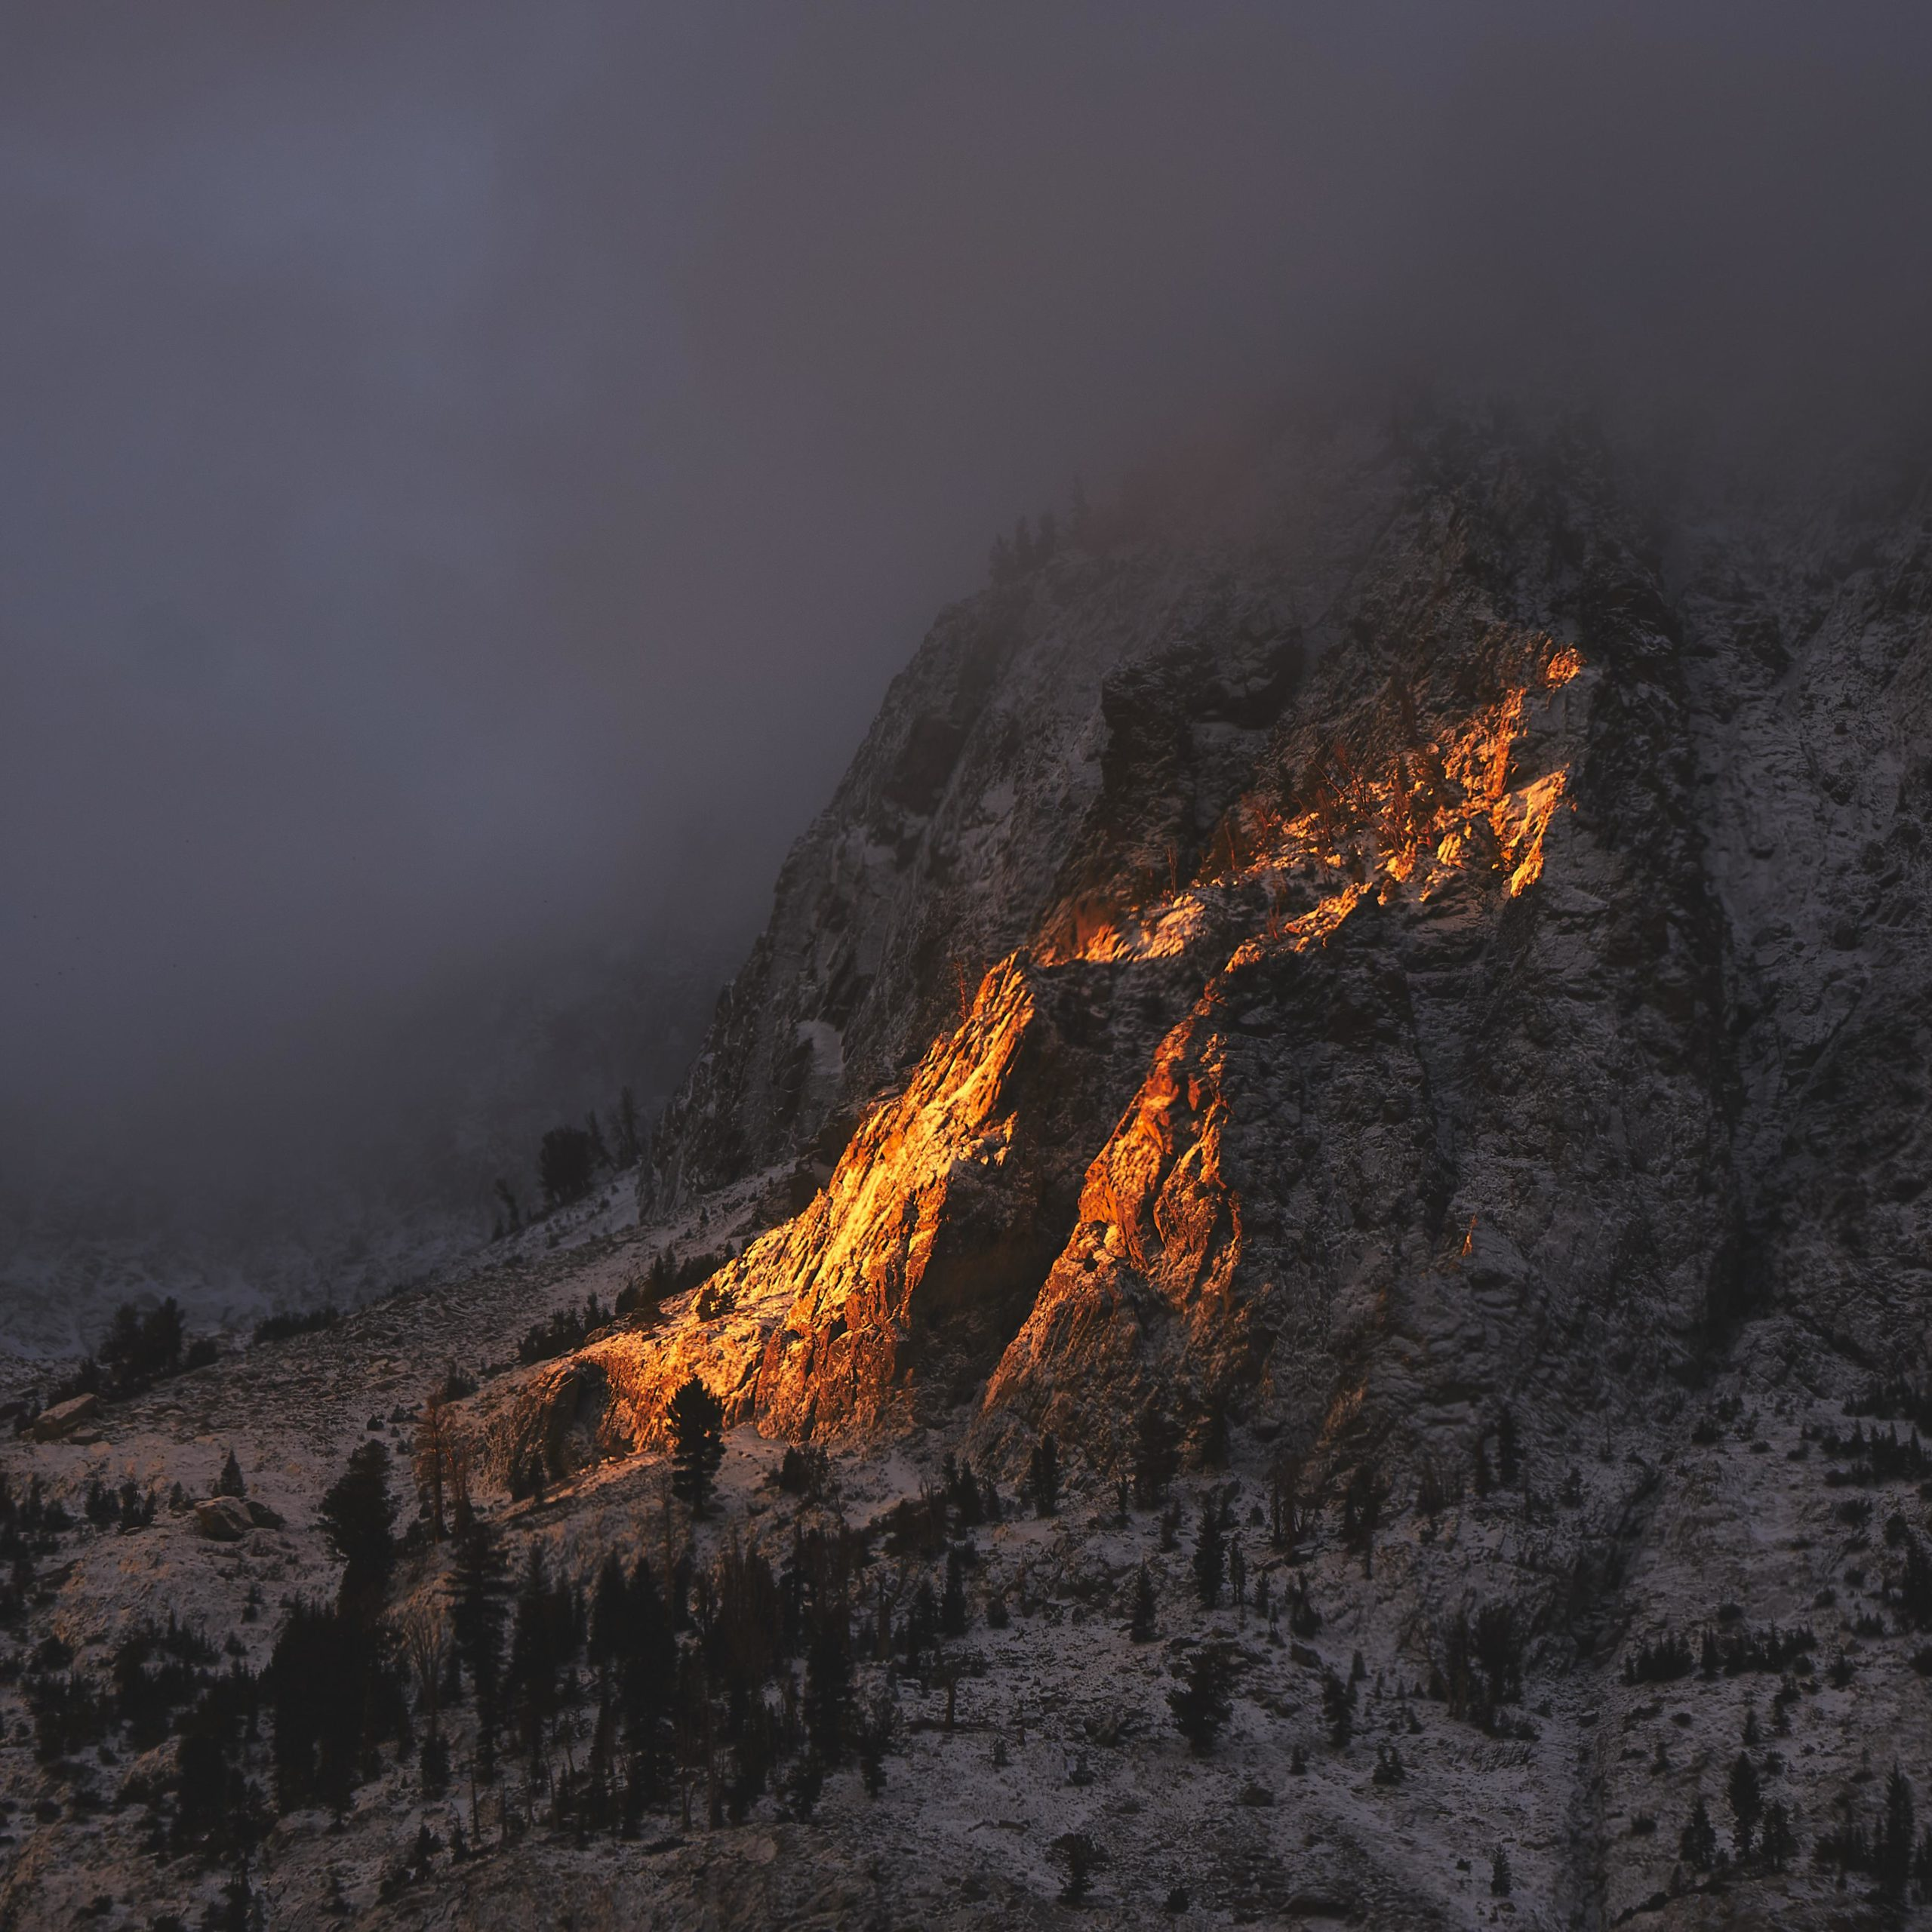 First light, first snow June Lake, California